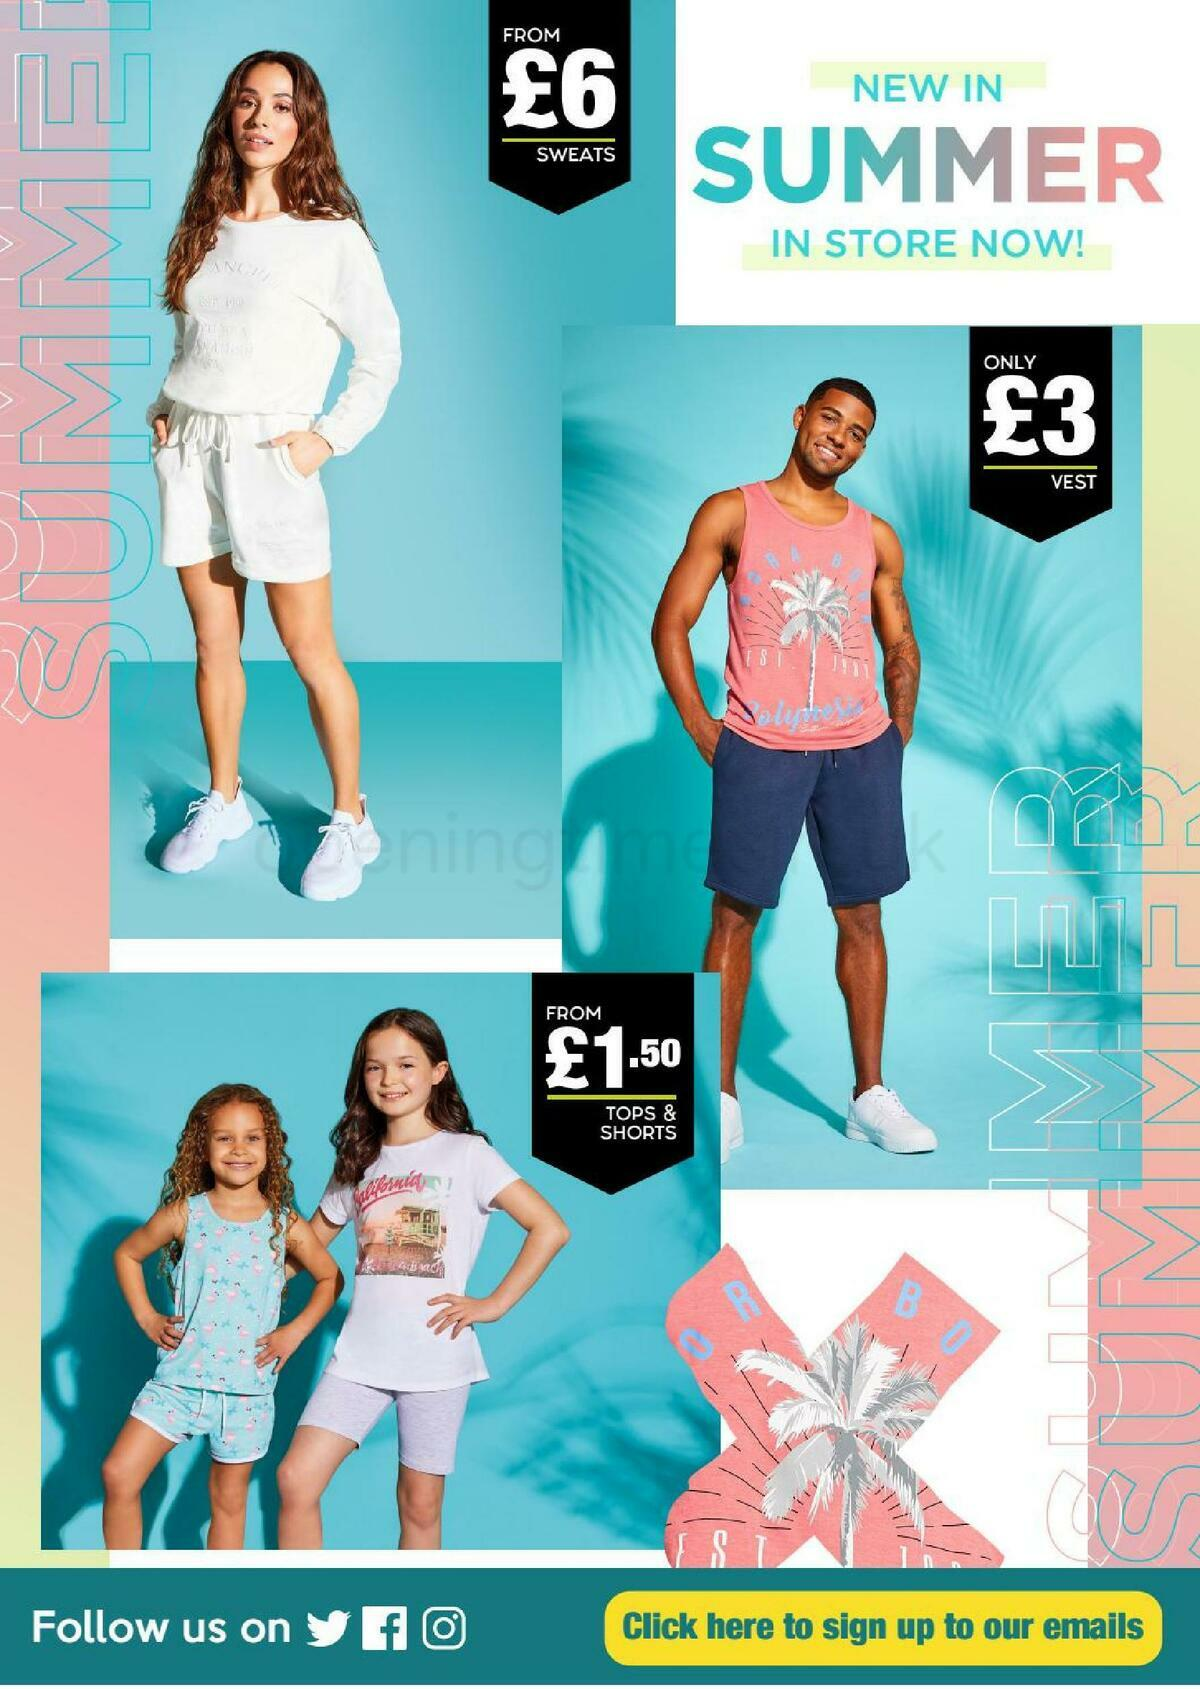 Poundland Offers from June 15